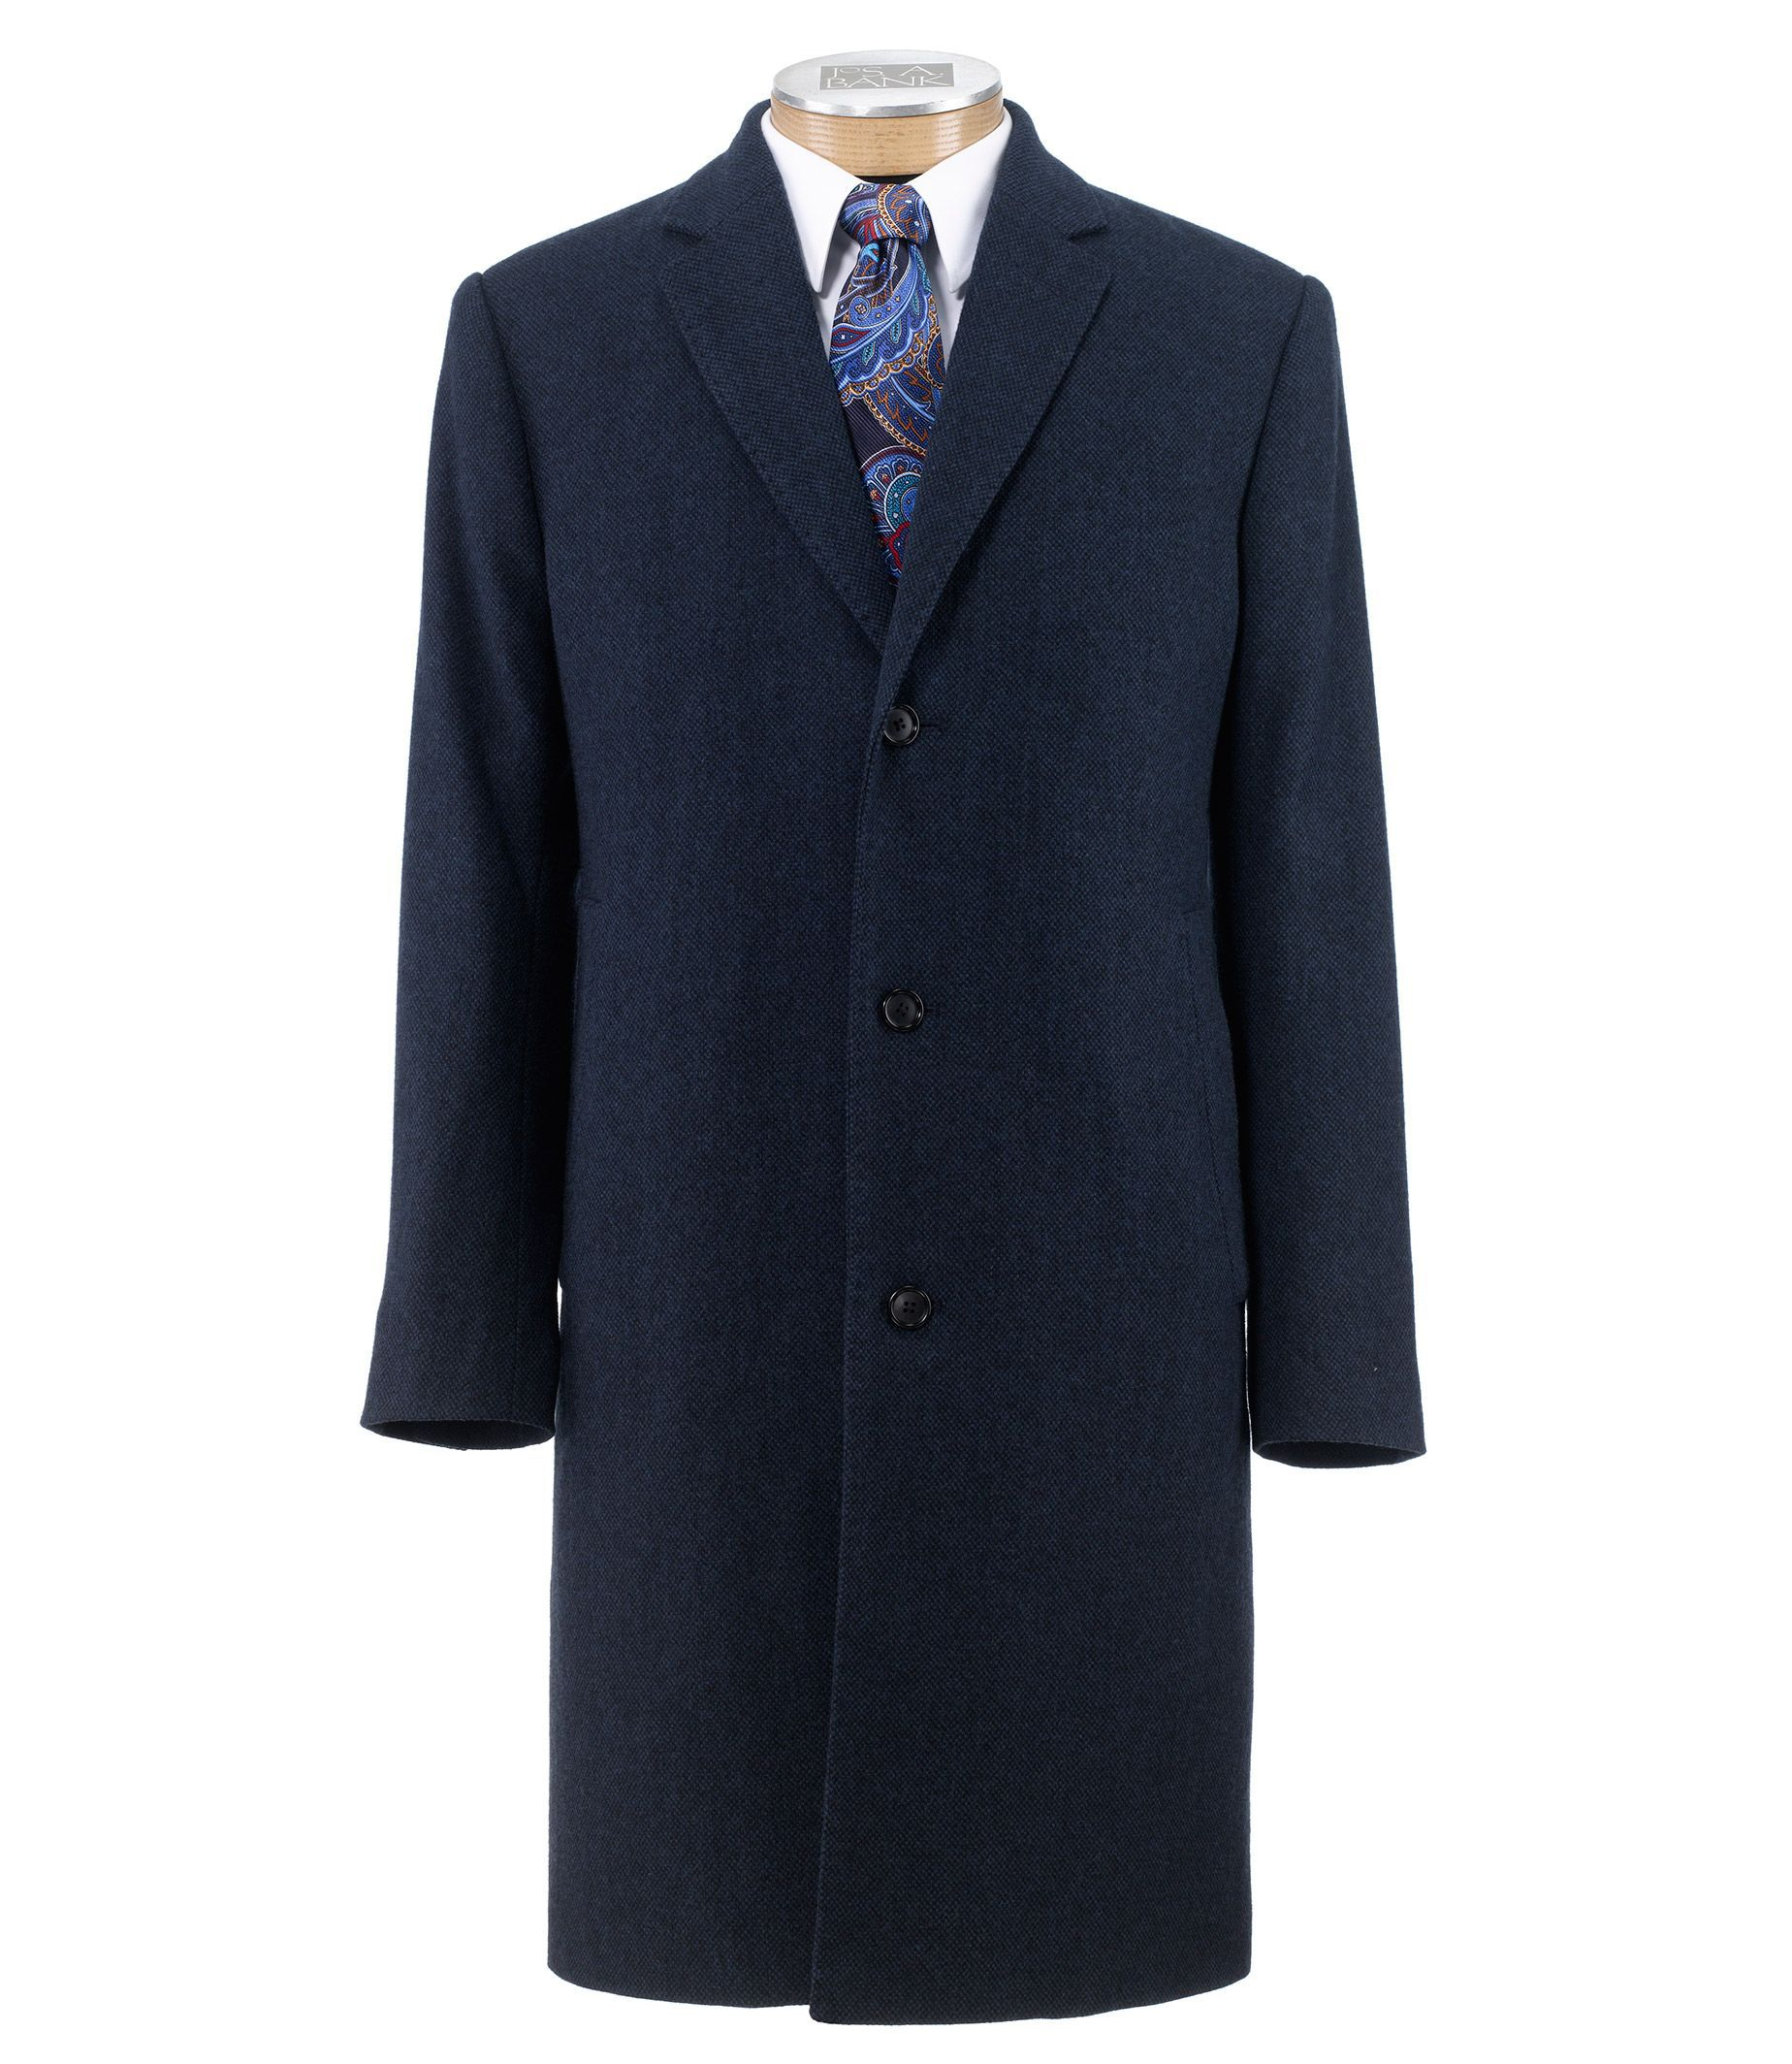 Executive Full Length Topcoat Extended Sizes